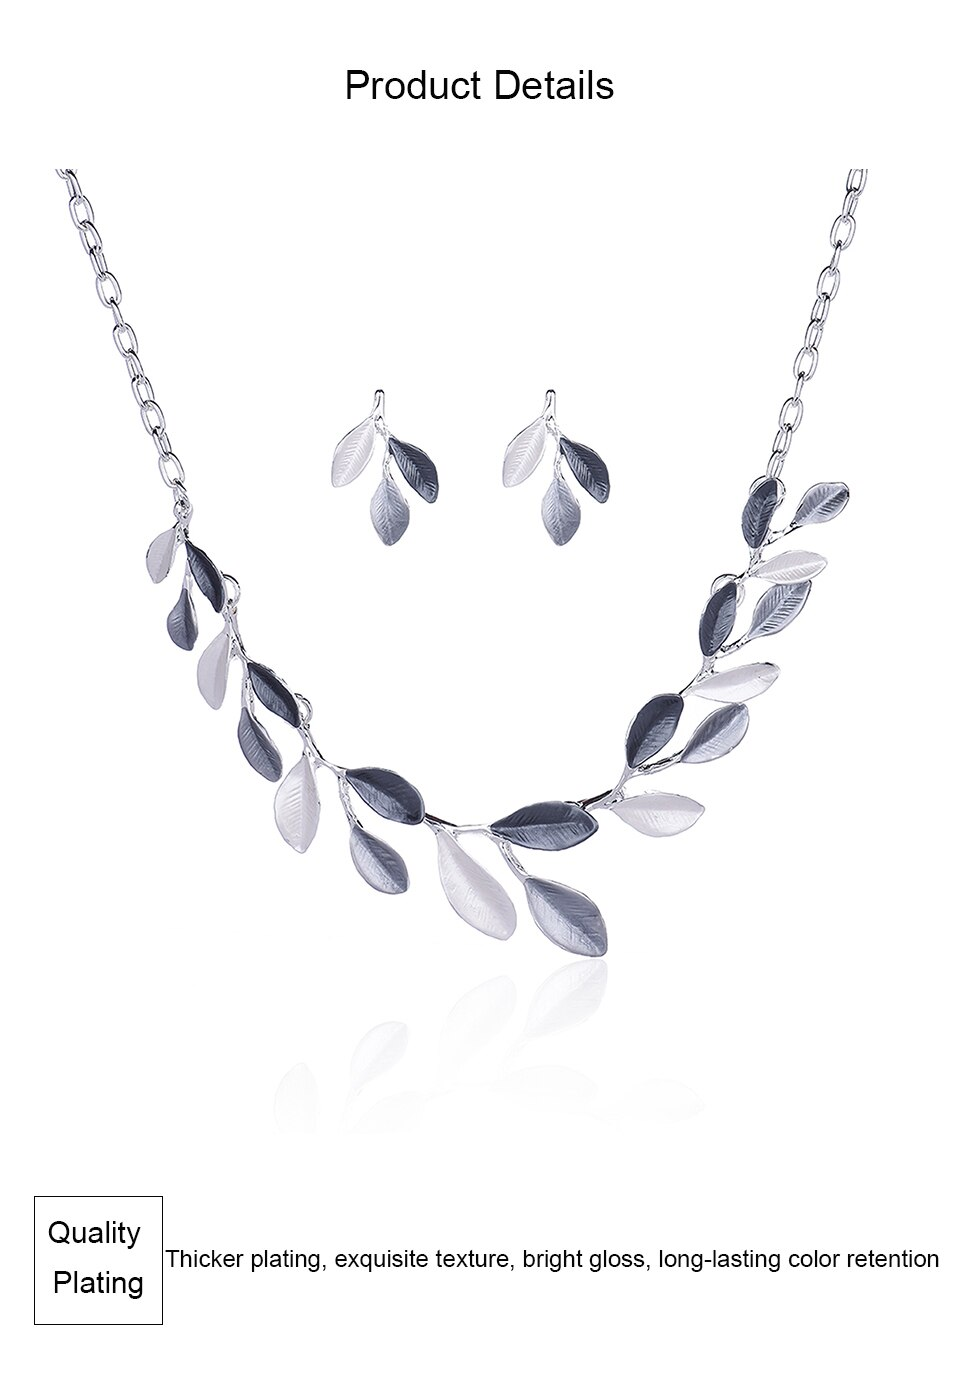 Cring Coco 2020 Enamel Leaf Necklaces for Women Women's Chains Collares Necklace Wedding  Jewelry Girls Party Choker Friend Gift